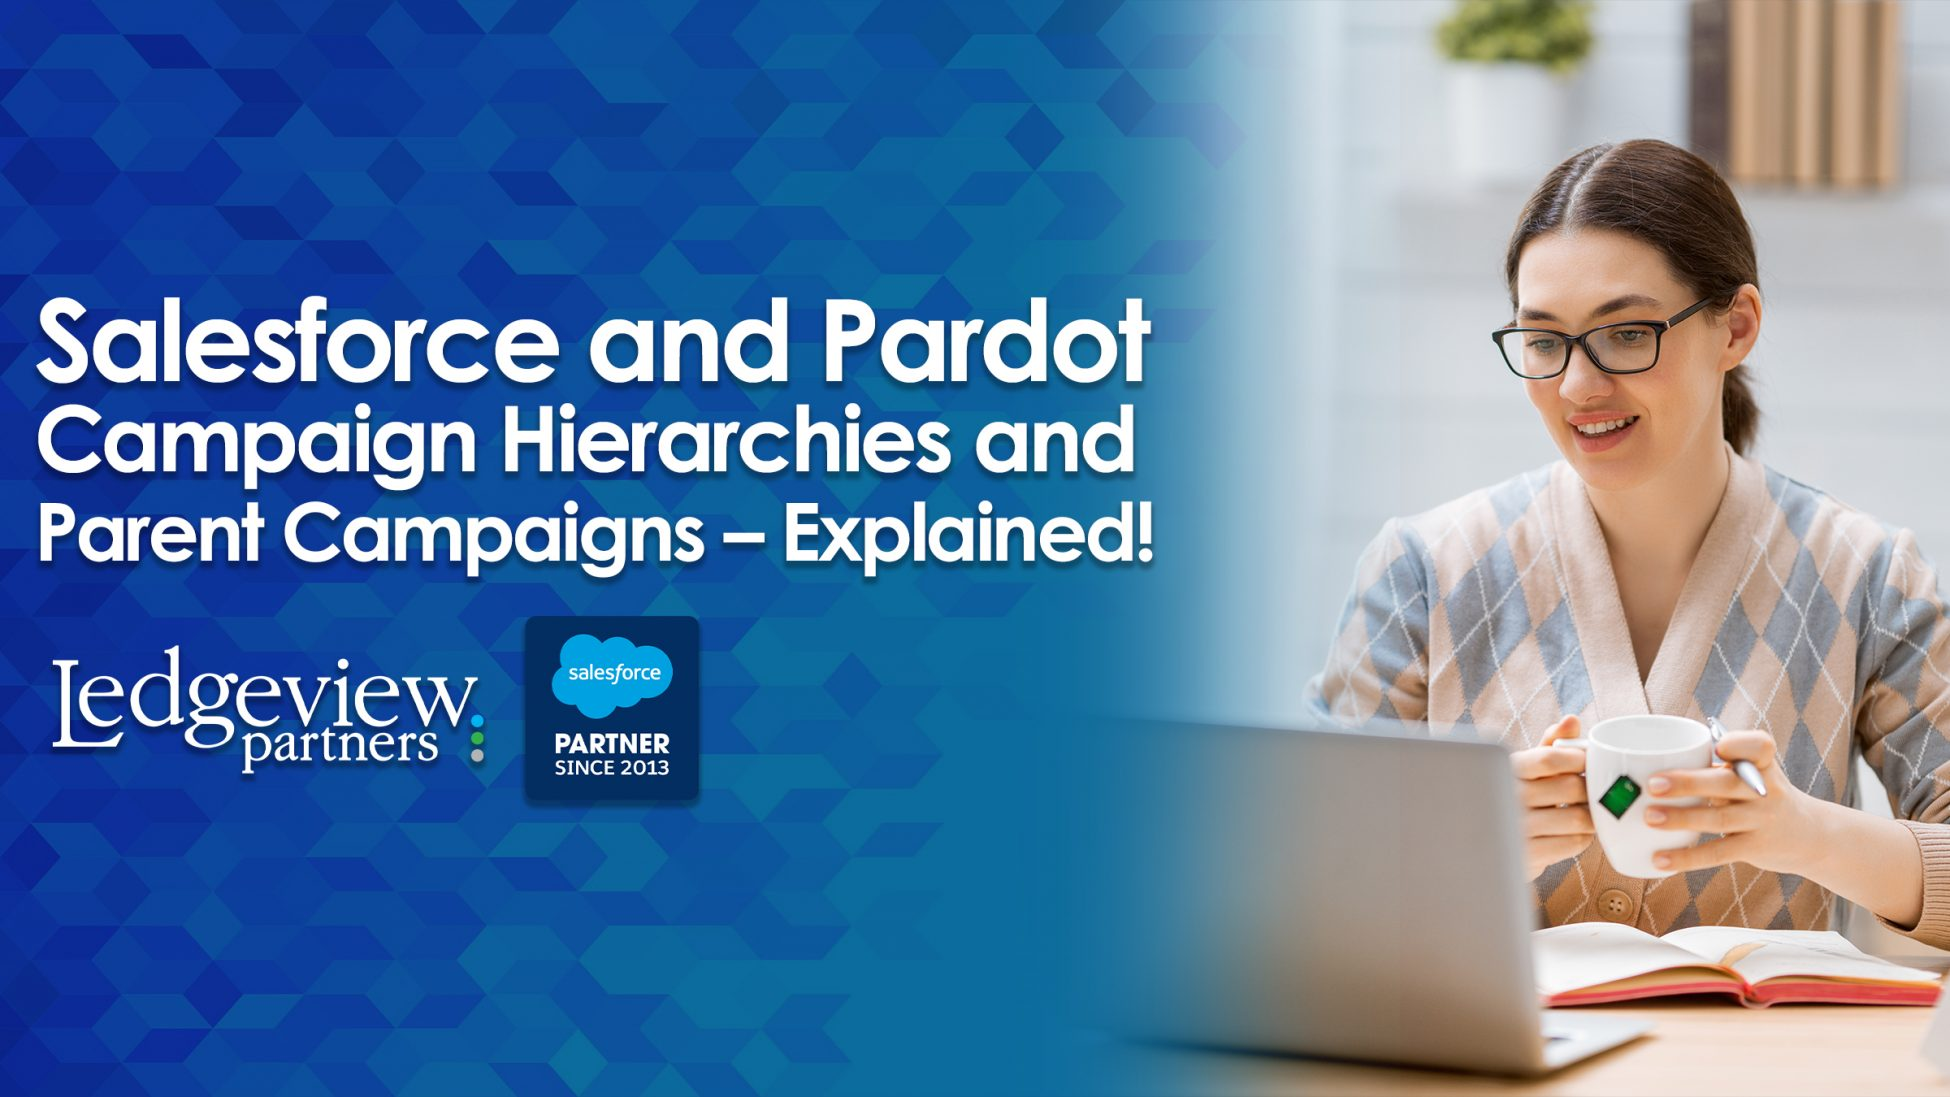 Salesforce and Pardot Campaign Hierarchies and Parent Campaigns – Explained!